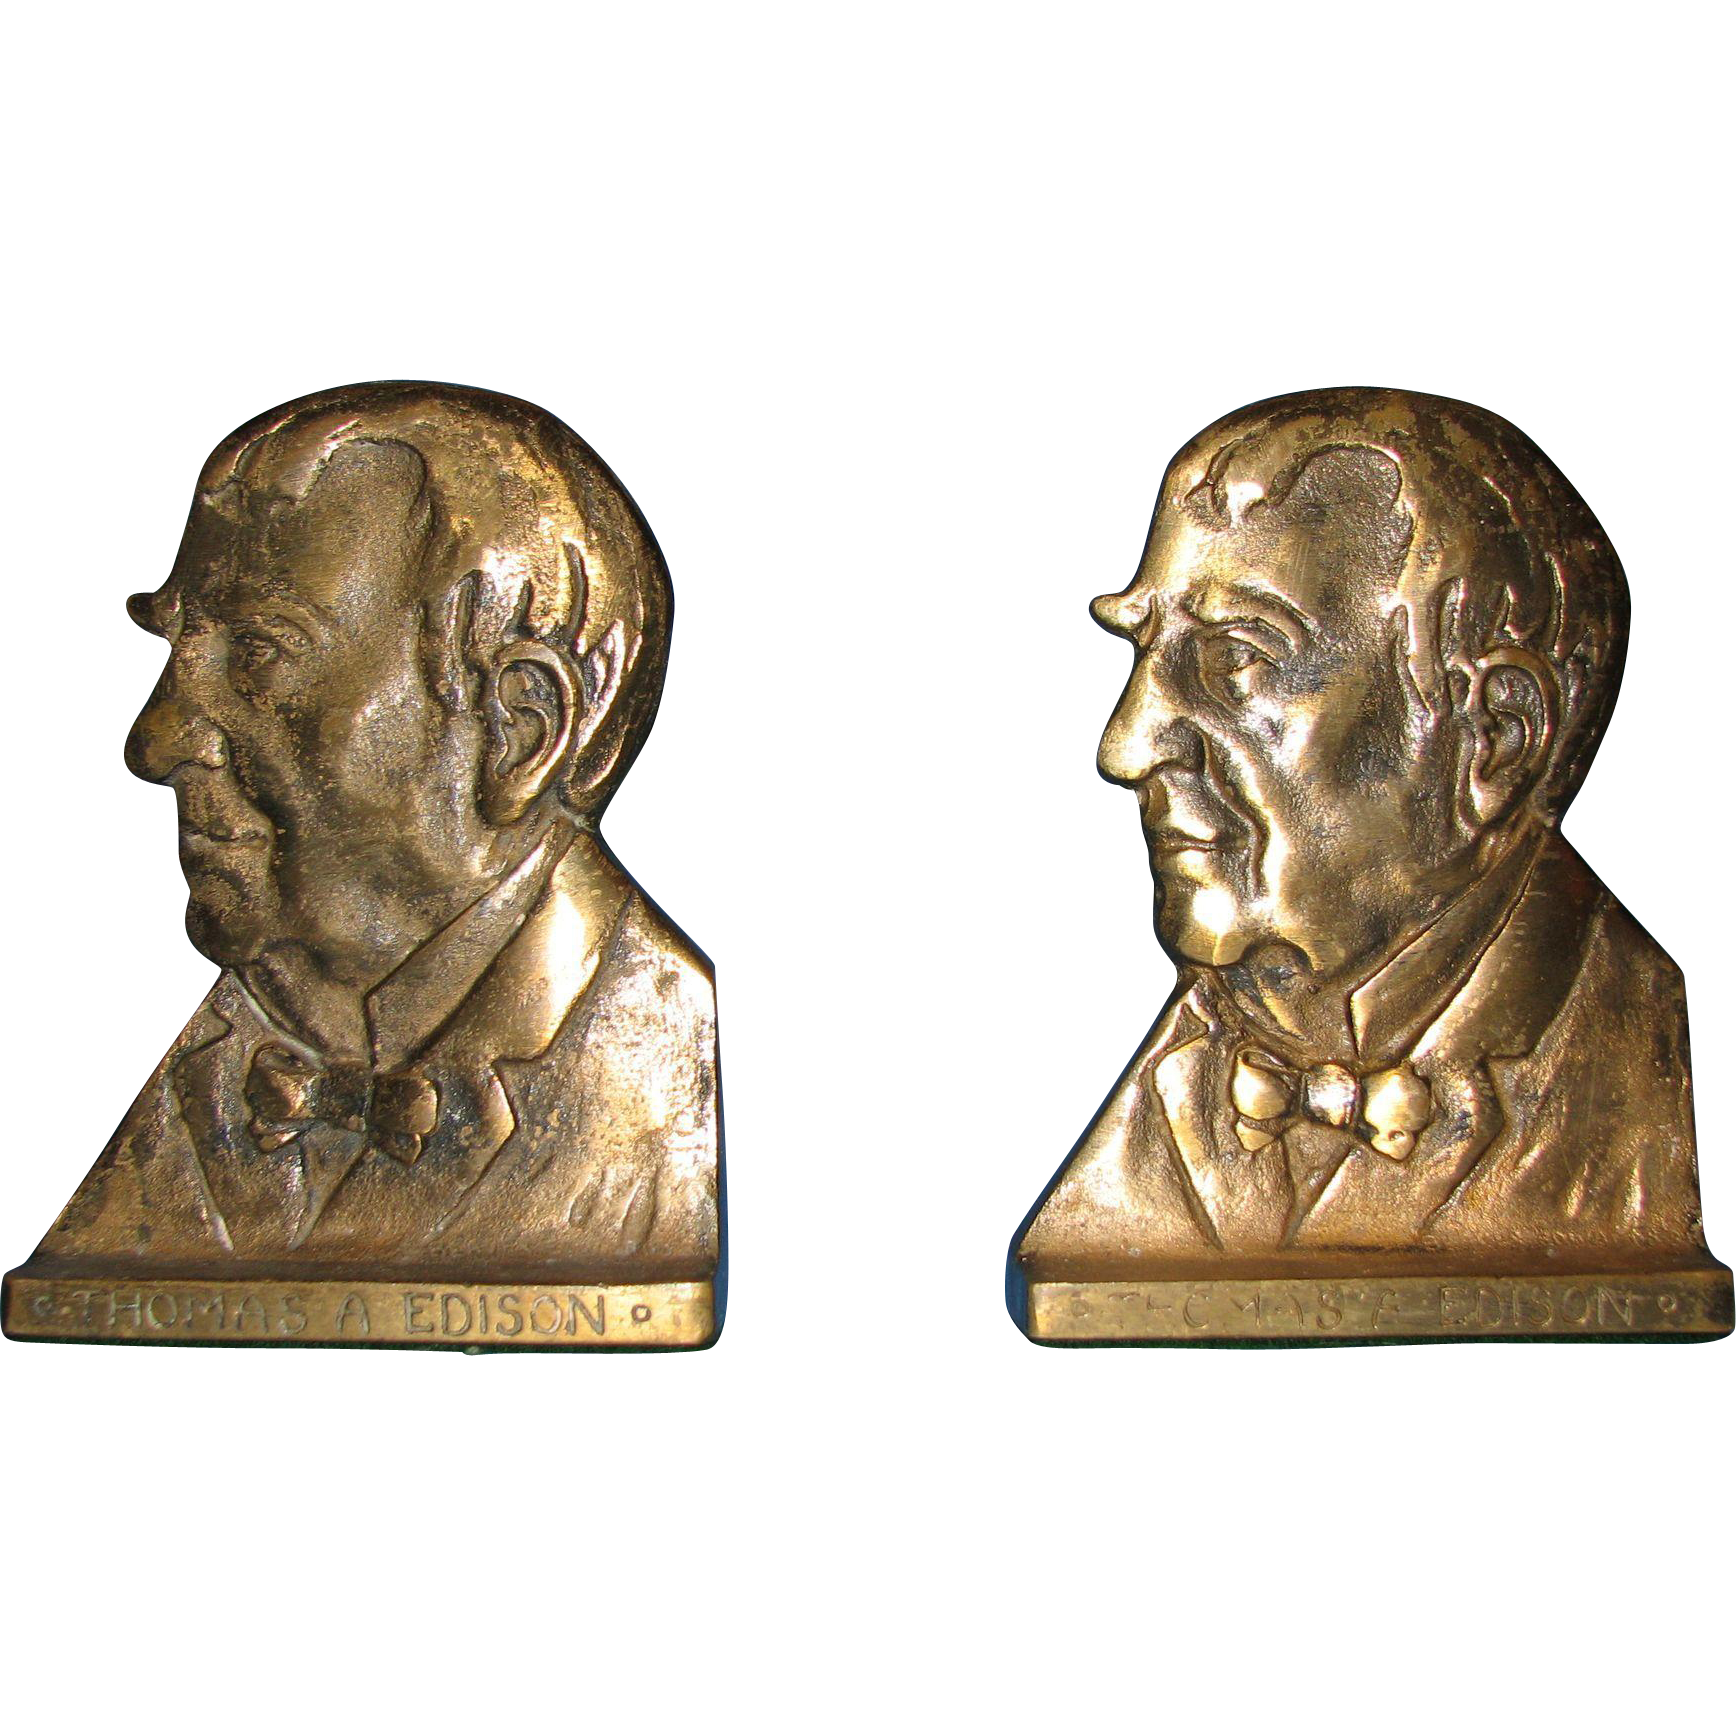 Thomas A Edison Bookends